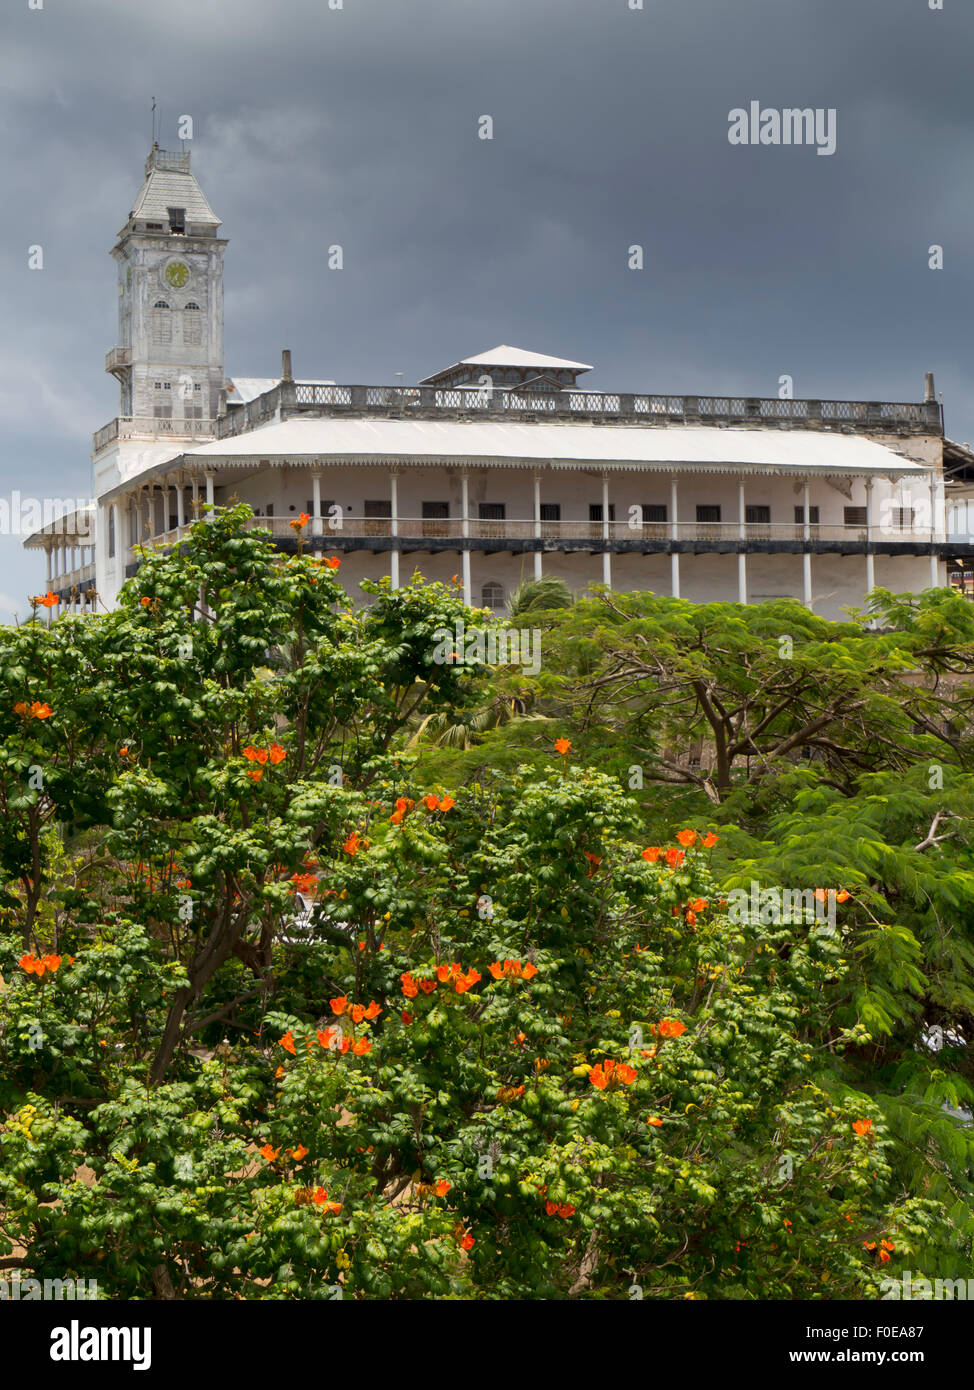 east africa tanzania zanzibar stone town house of wonders stock photo royalty free image. Black Bedroom Furniture Sets. Home Design Ideas